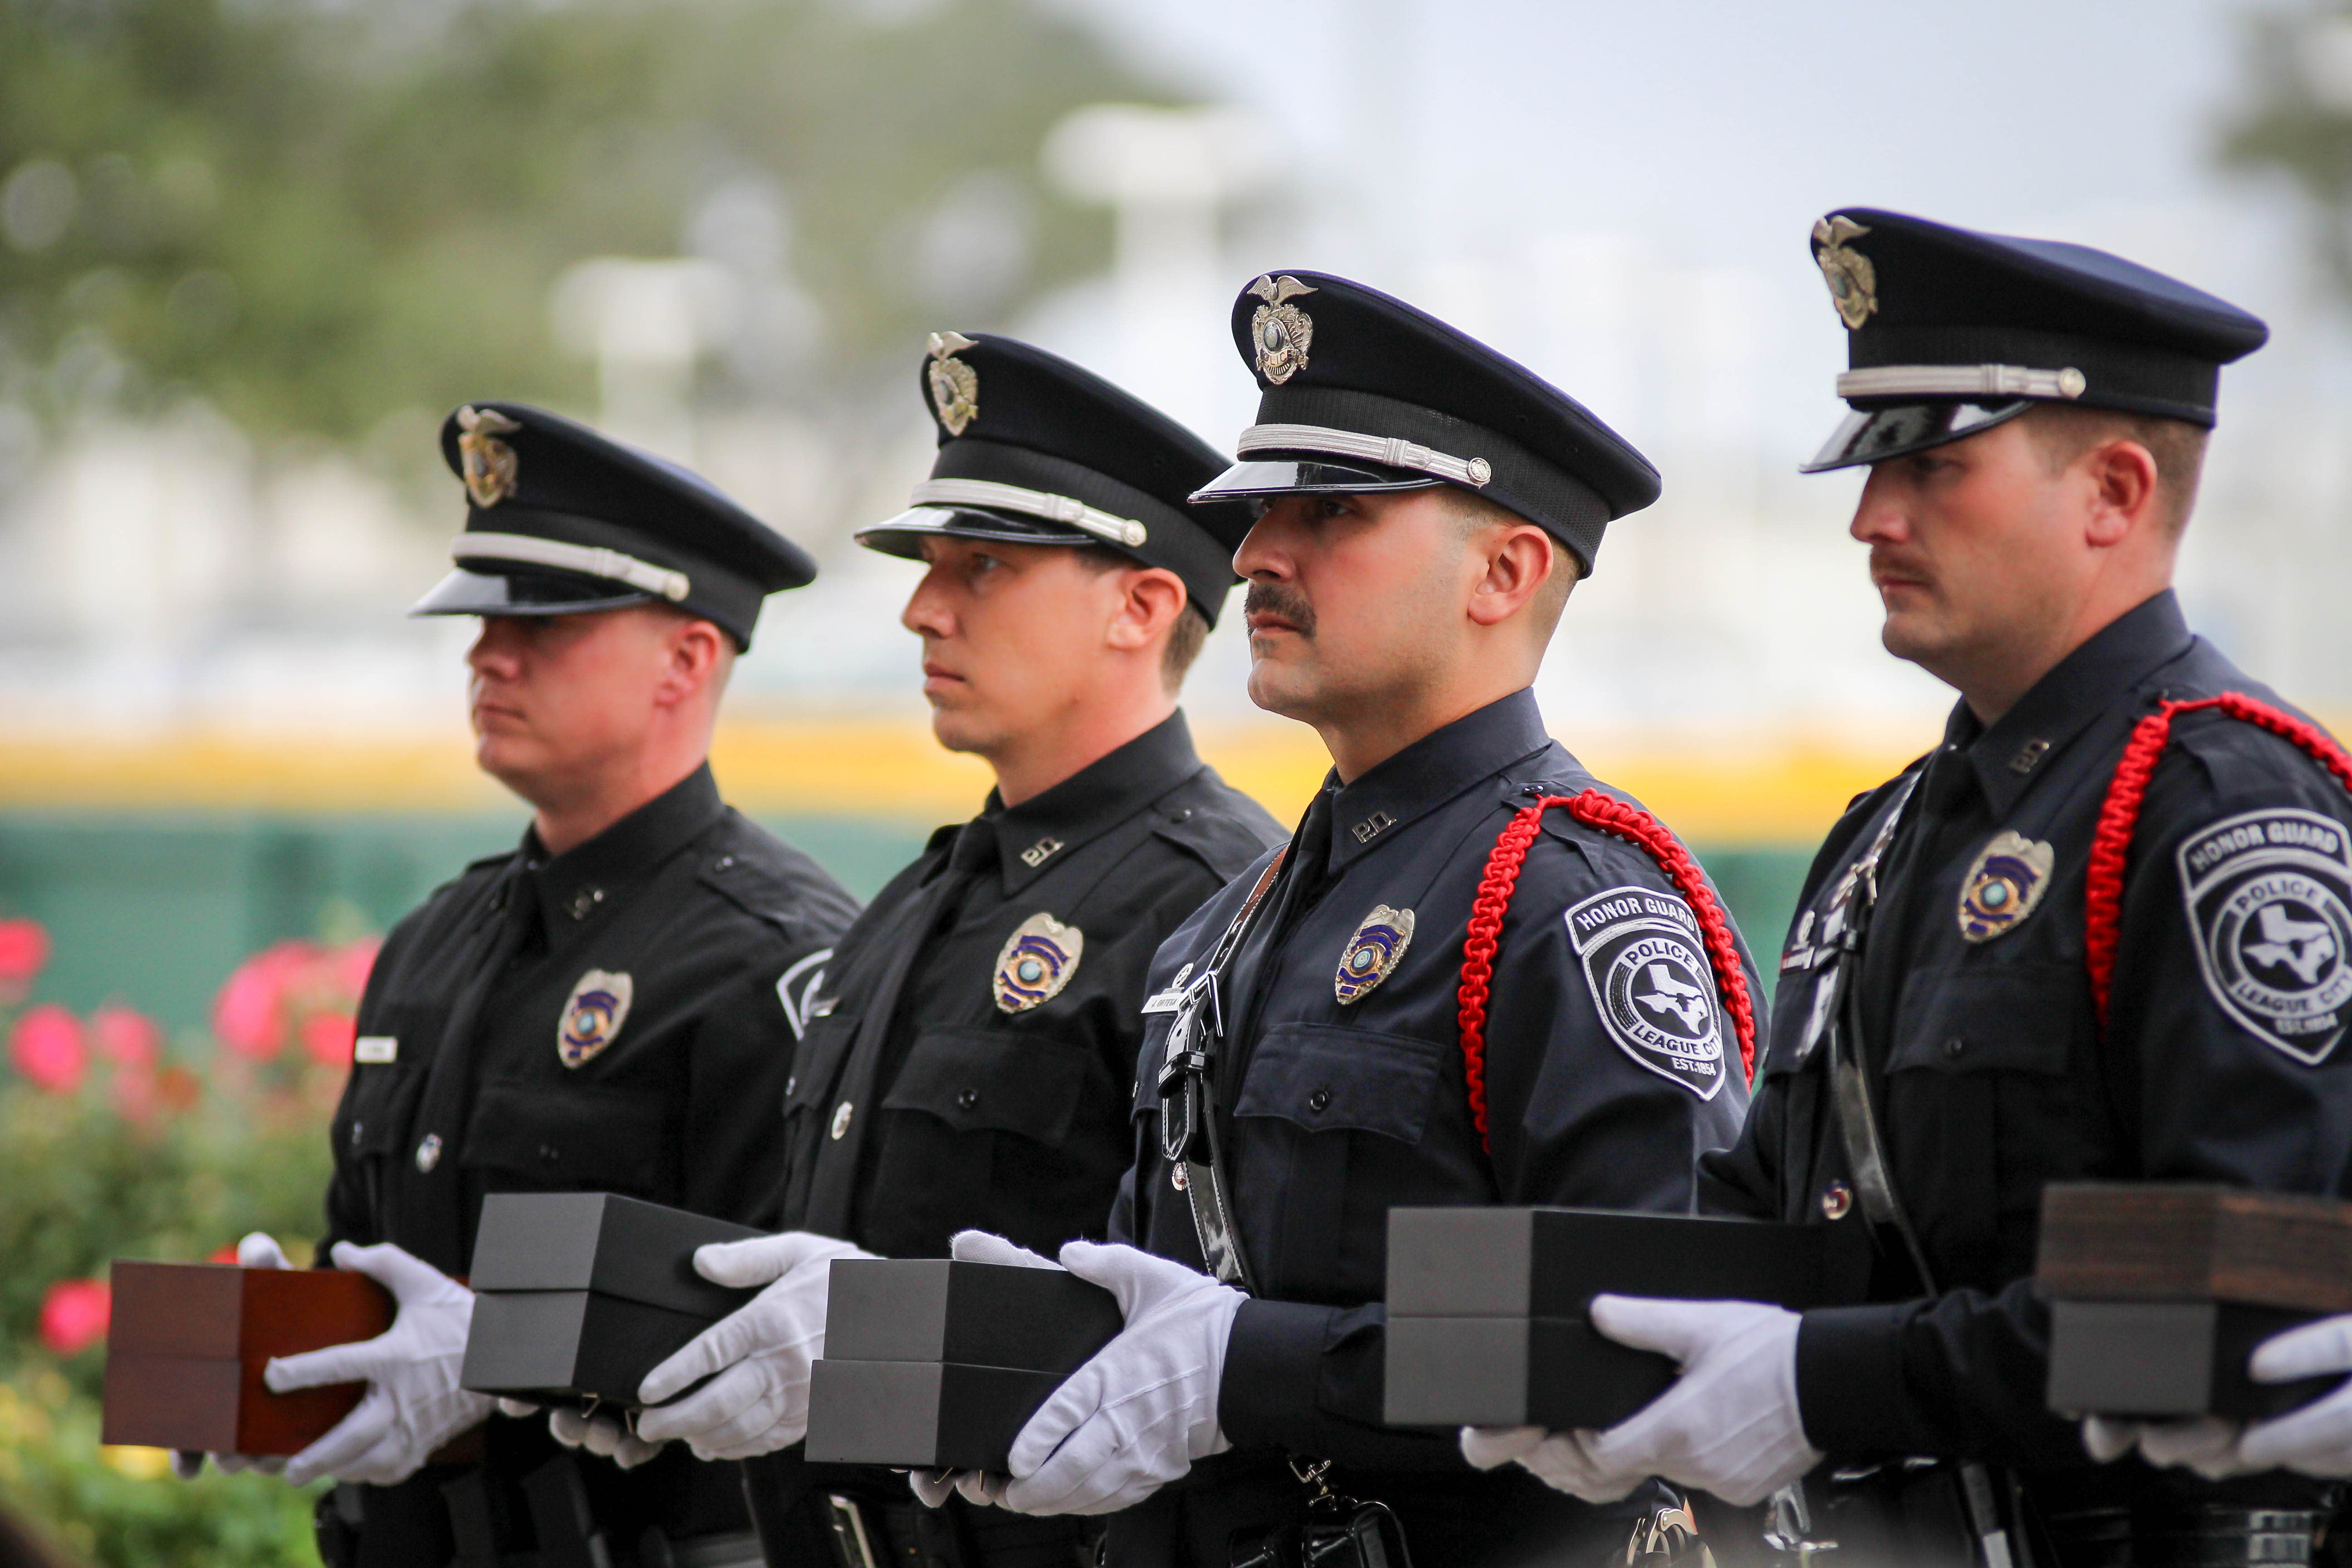 4 Police Men Standing in Dress Uniform Holding Boxes